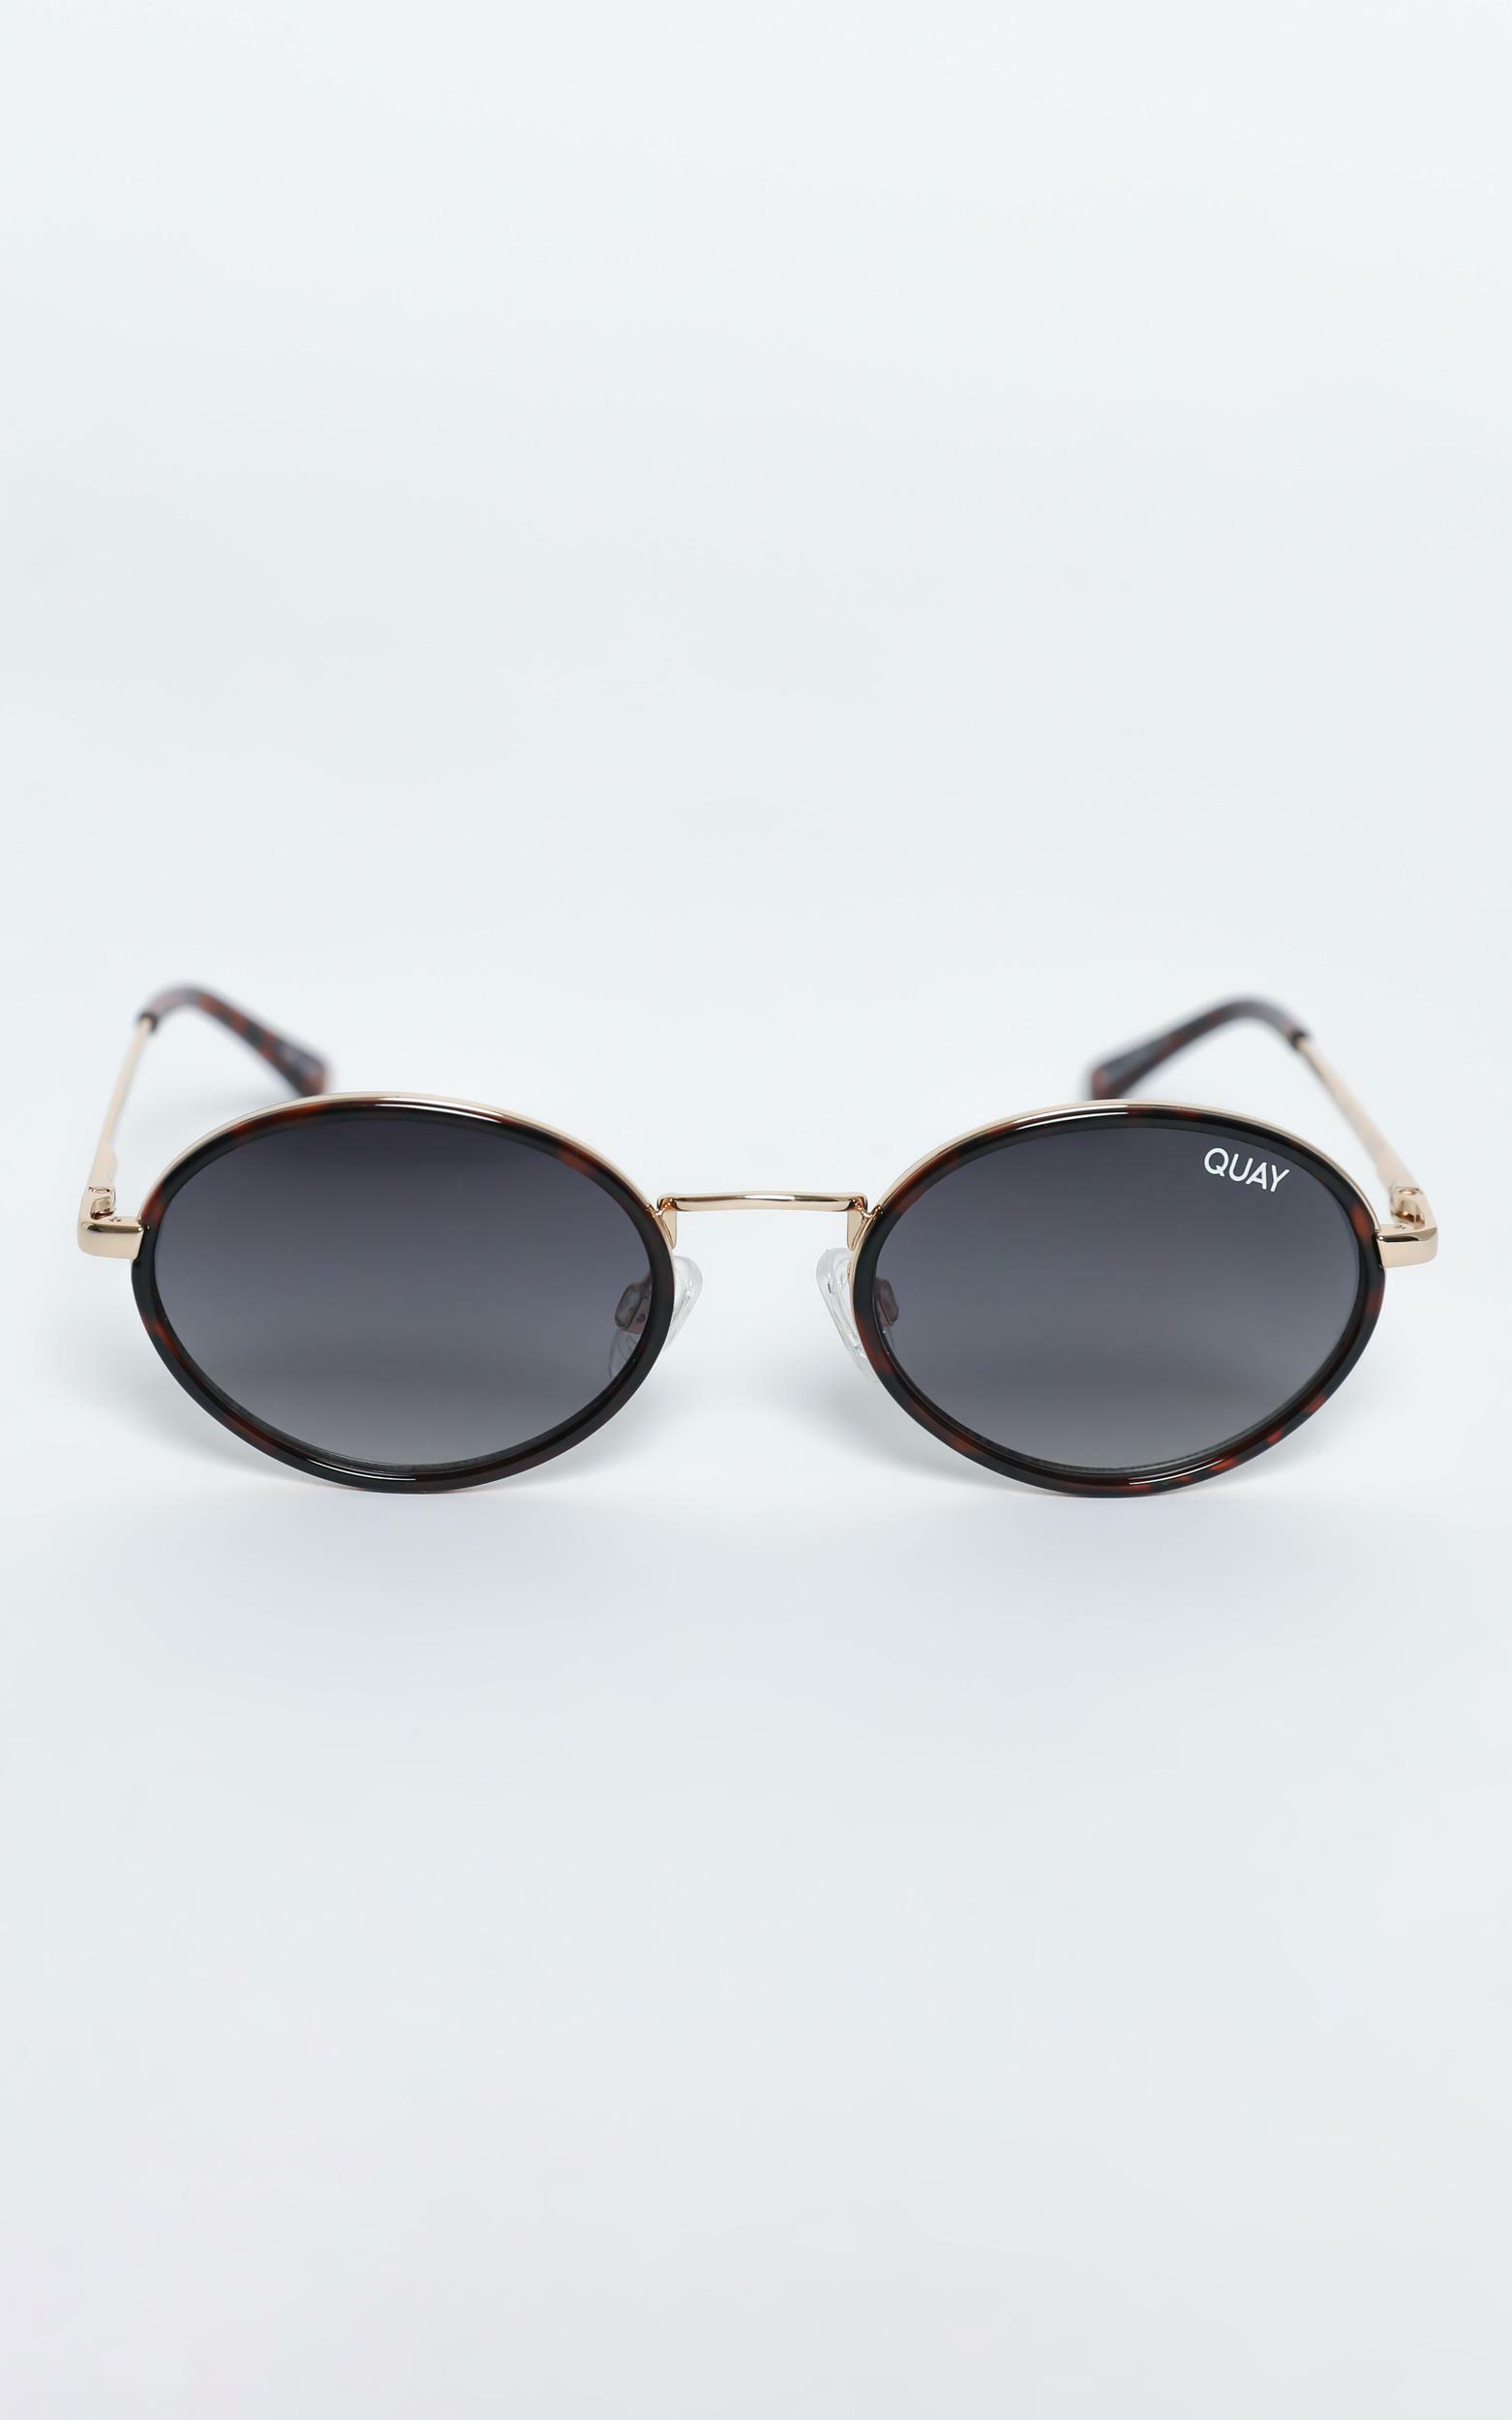 Quay - Line Up Sunglasses in Tort / Smoke, Brown, hi-res image number null